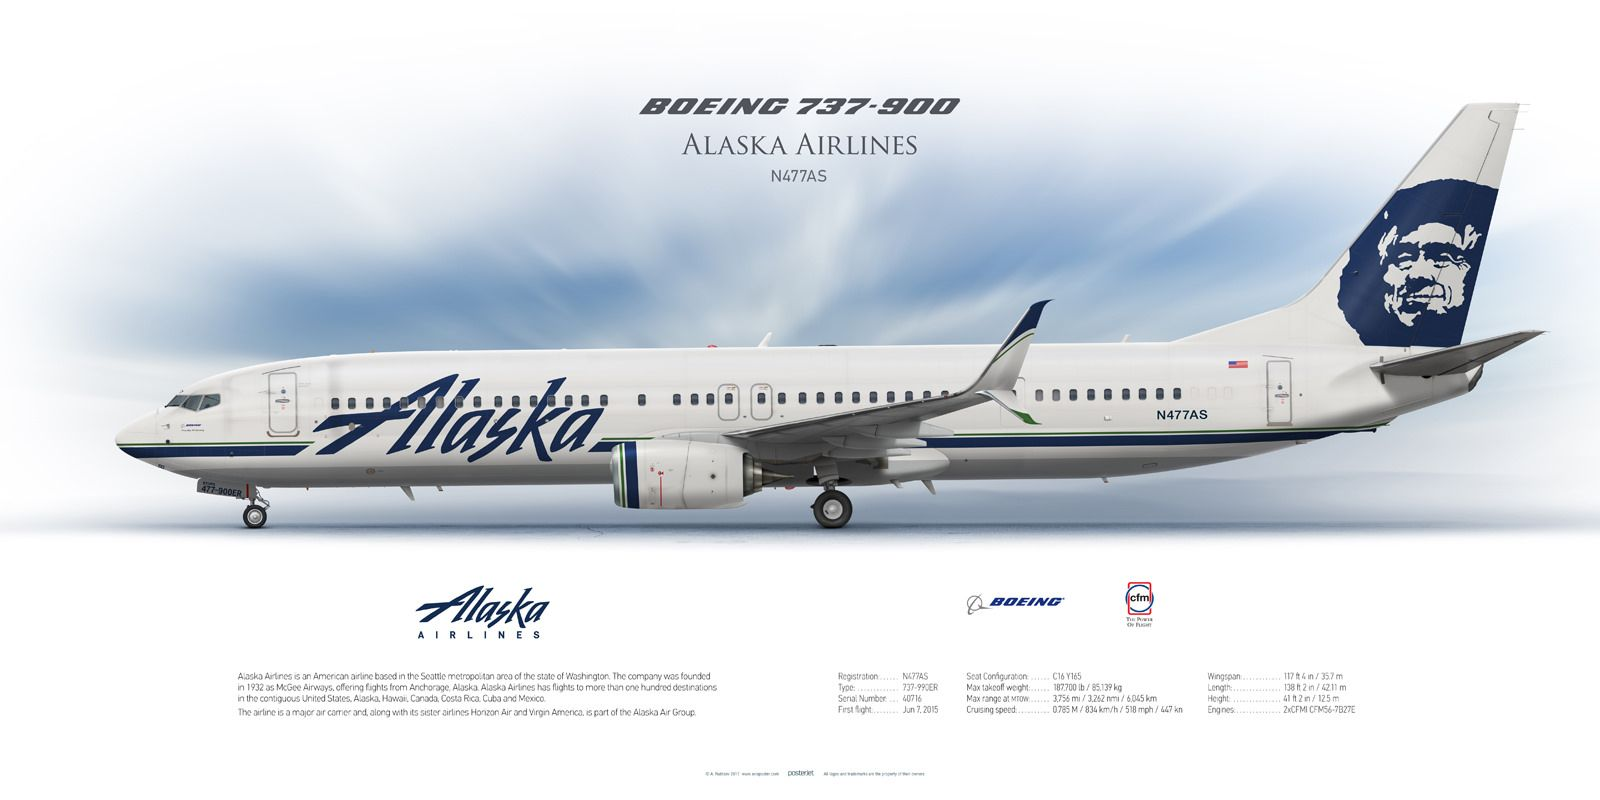 Co color art printing anchorage alaska - Boeing 737 900 Alaska Airlines N477as Airliner Profile Art Prints Www Aviaposter